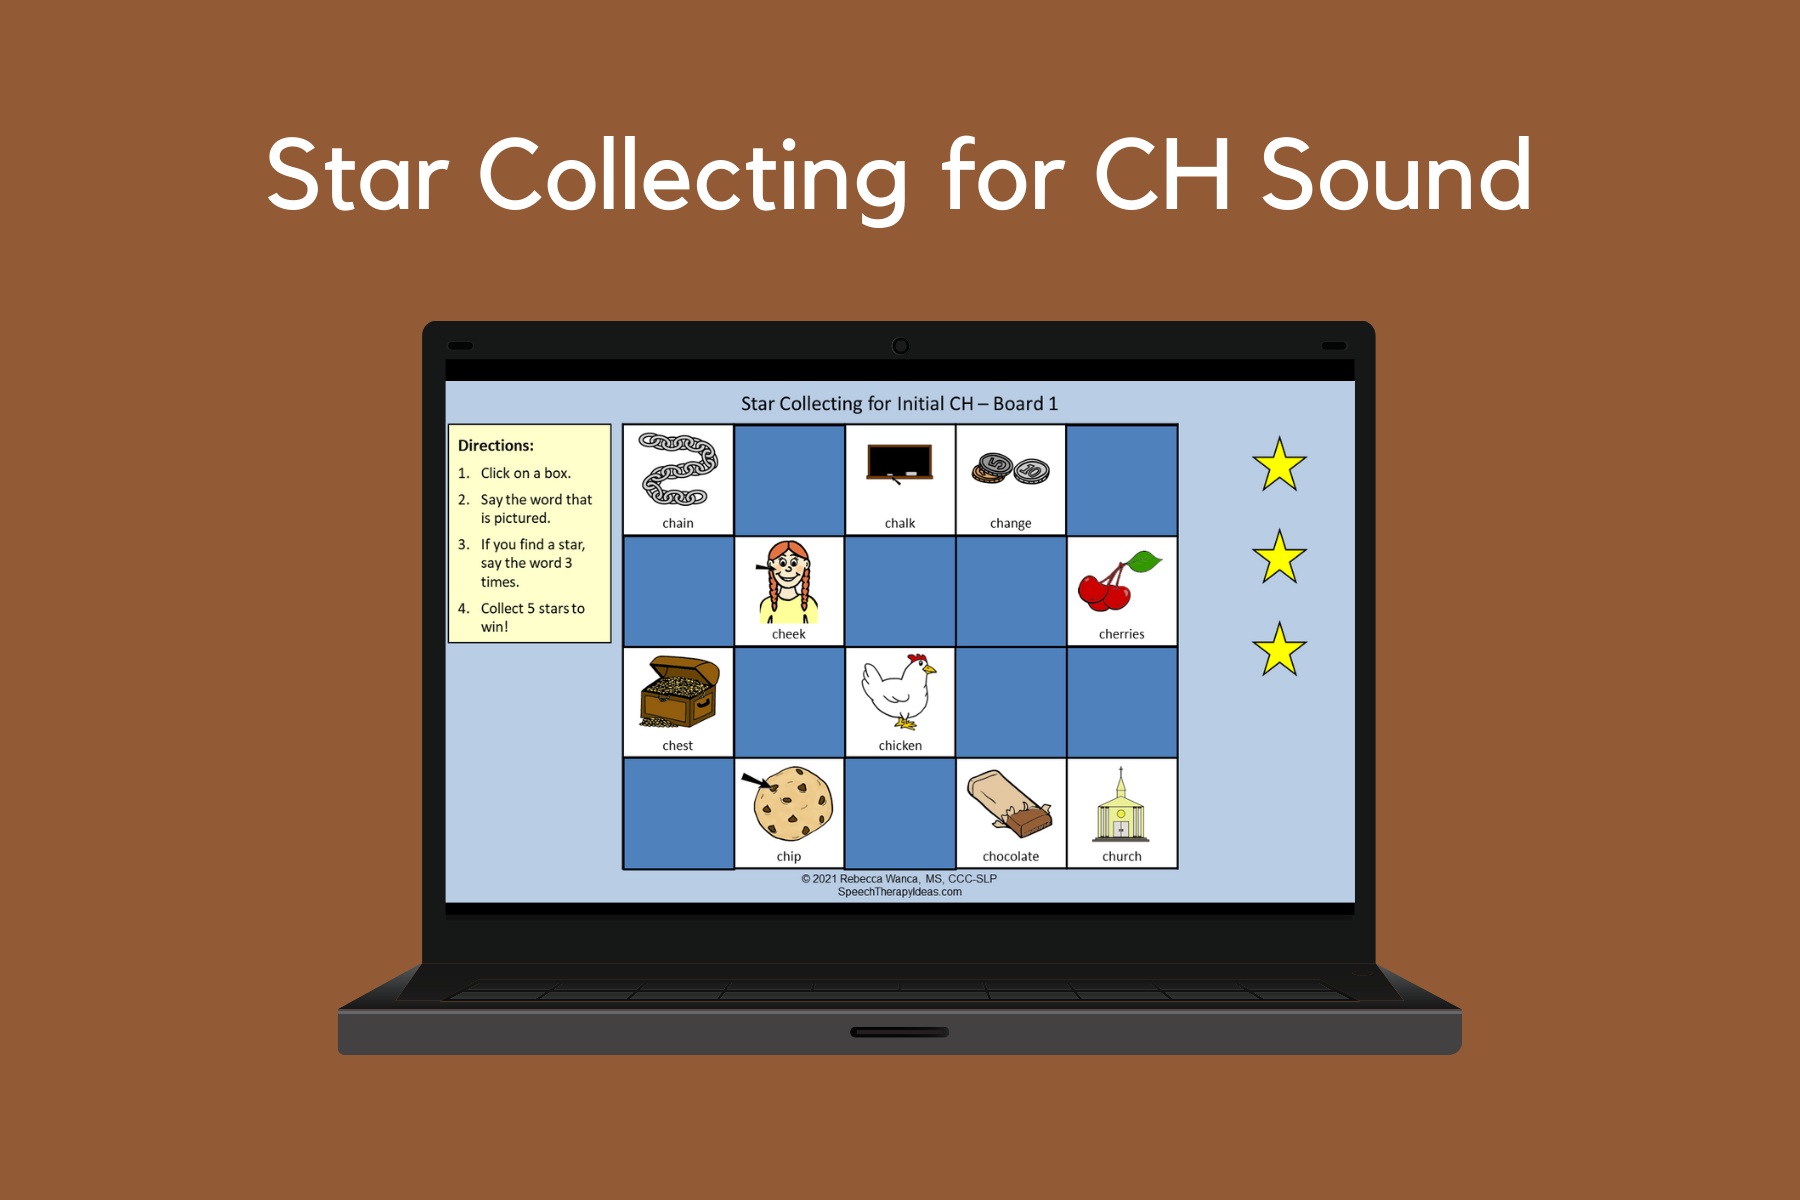 Star Collecting for CH Sound